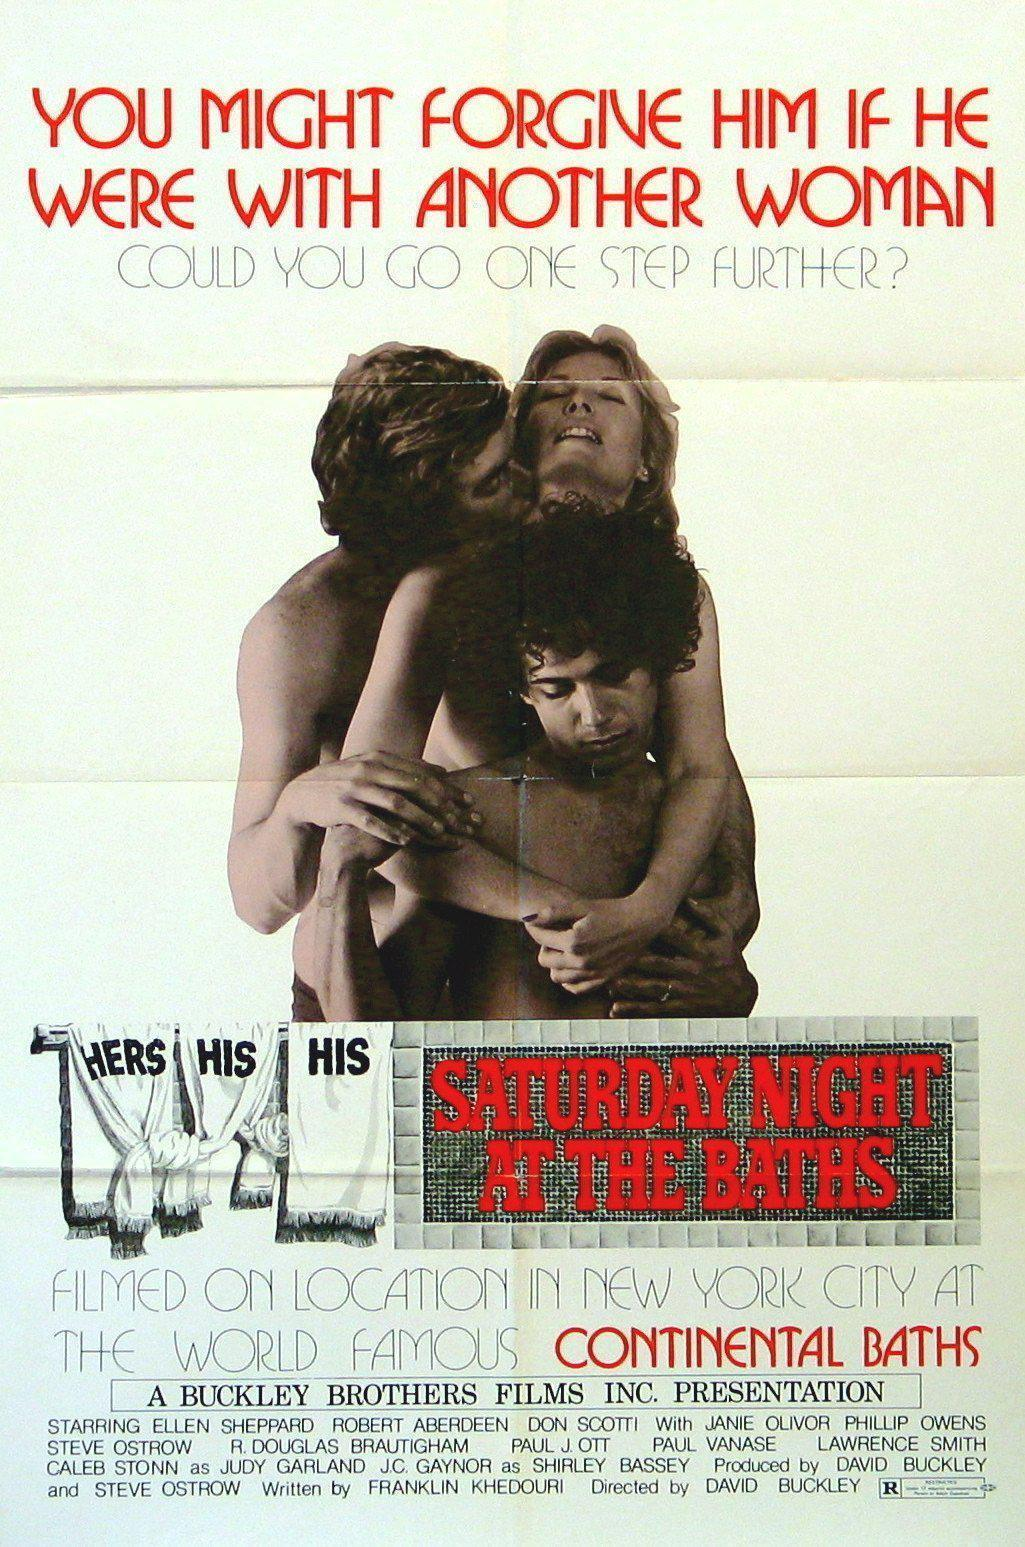 Saturday Night at the Baths 1 Sheet (27x41) Original Vintage Movie Poster